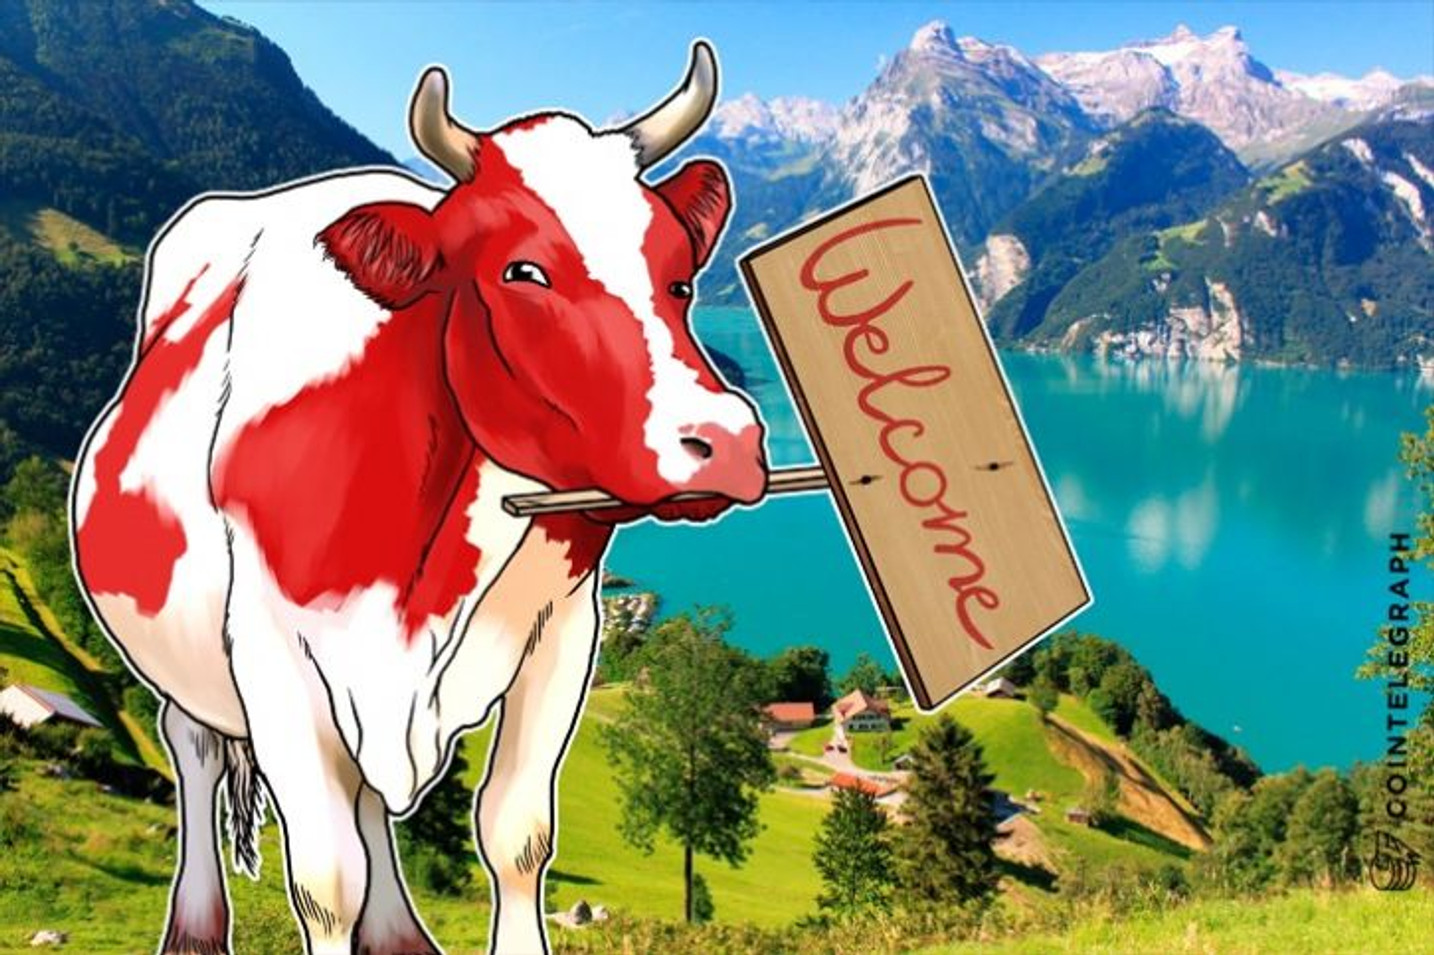 The Bitcoin Arena: Switzerland has a New CryptoPolis